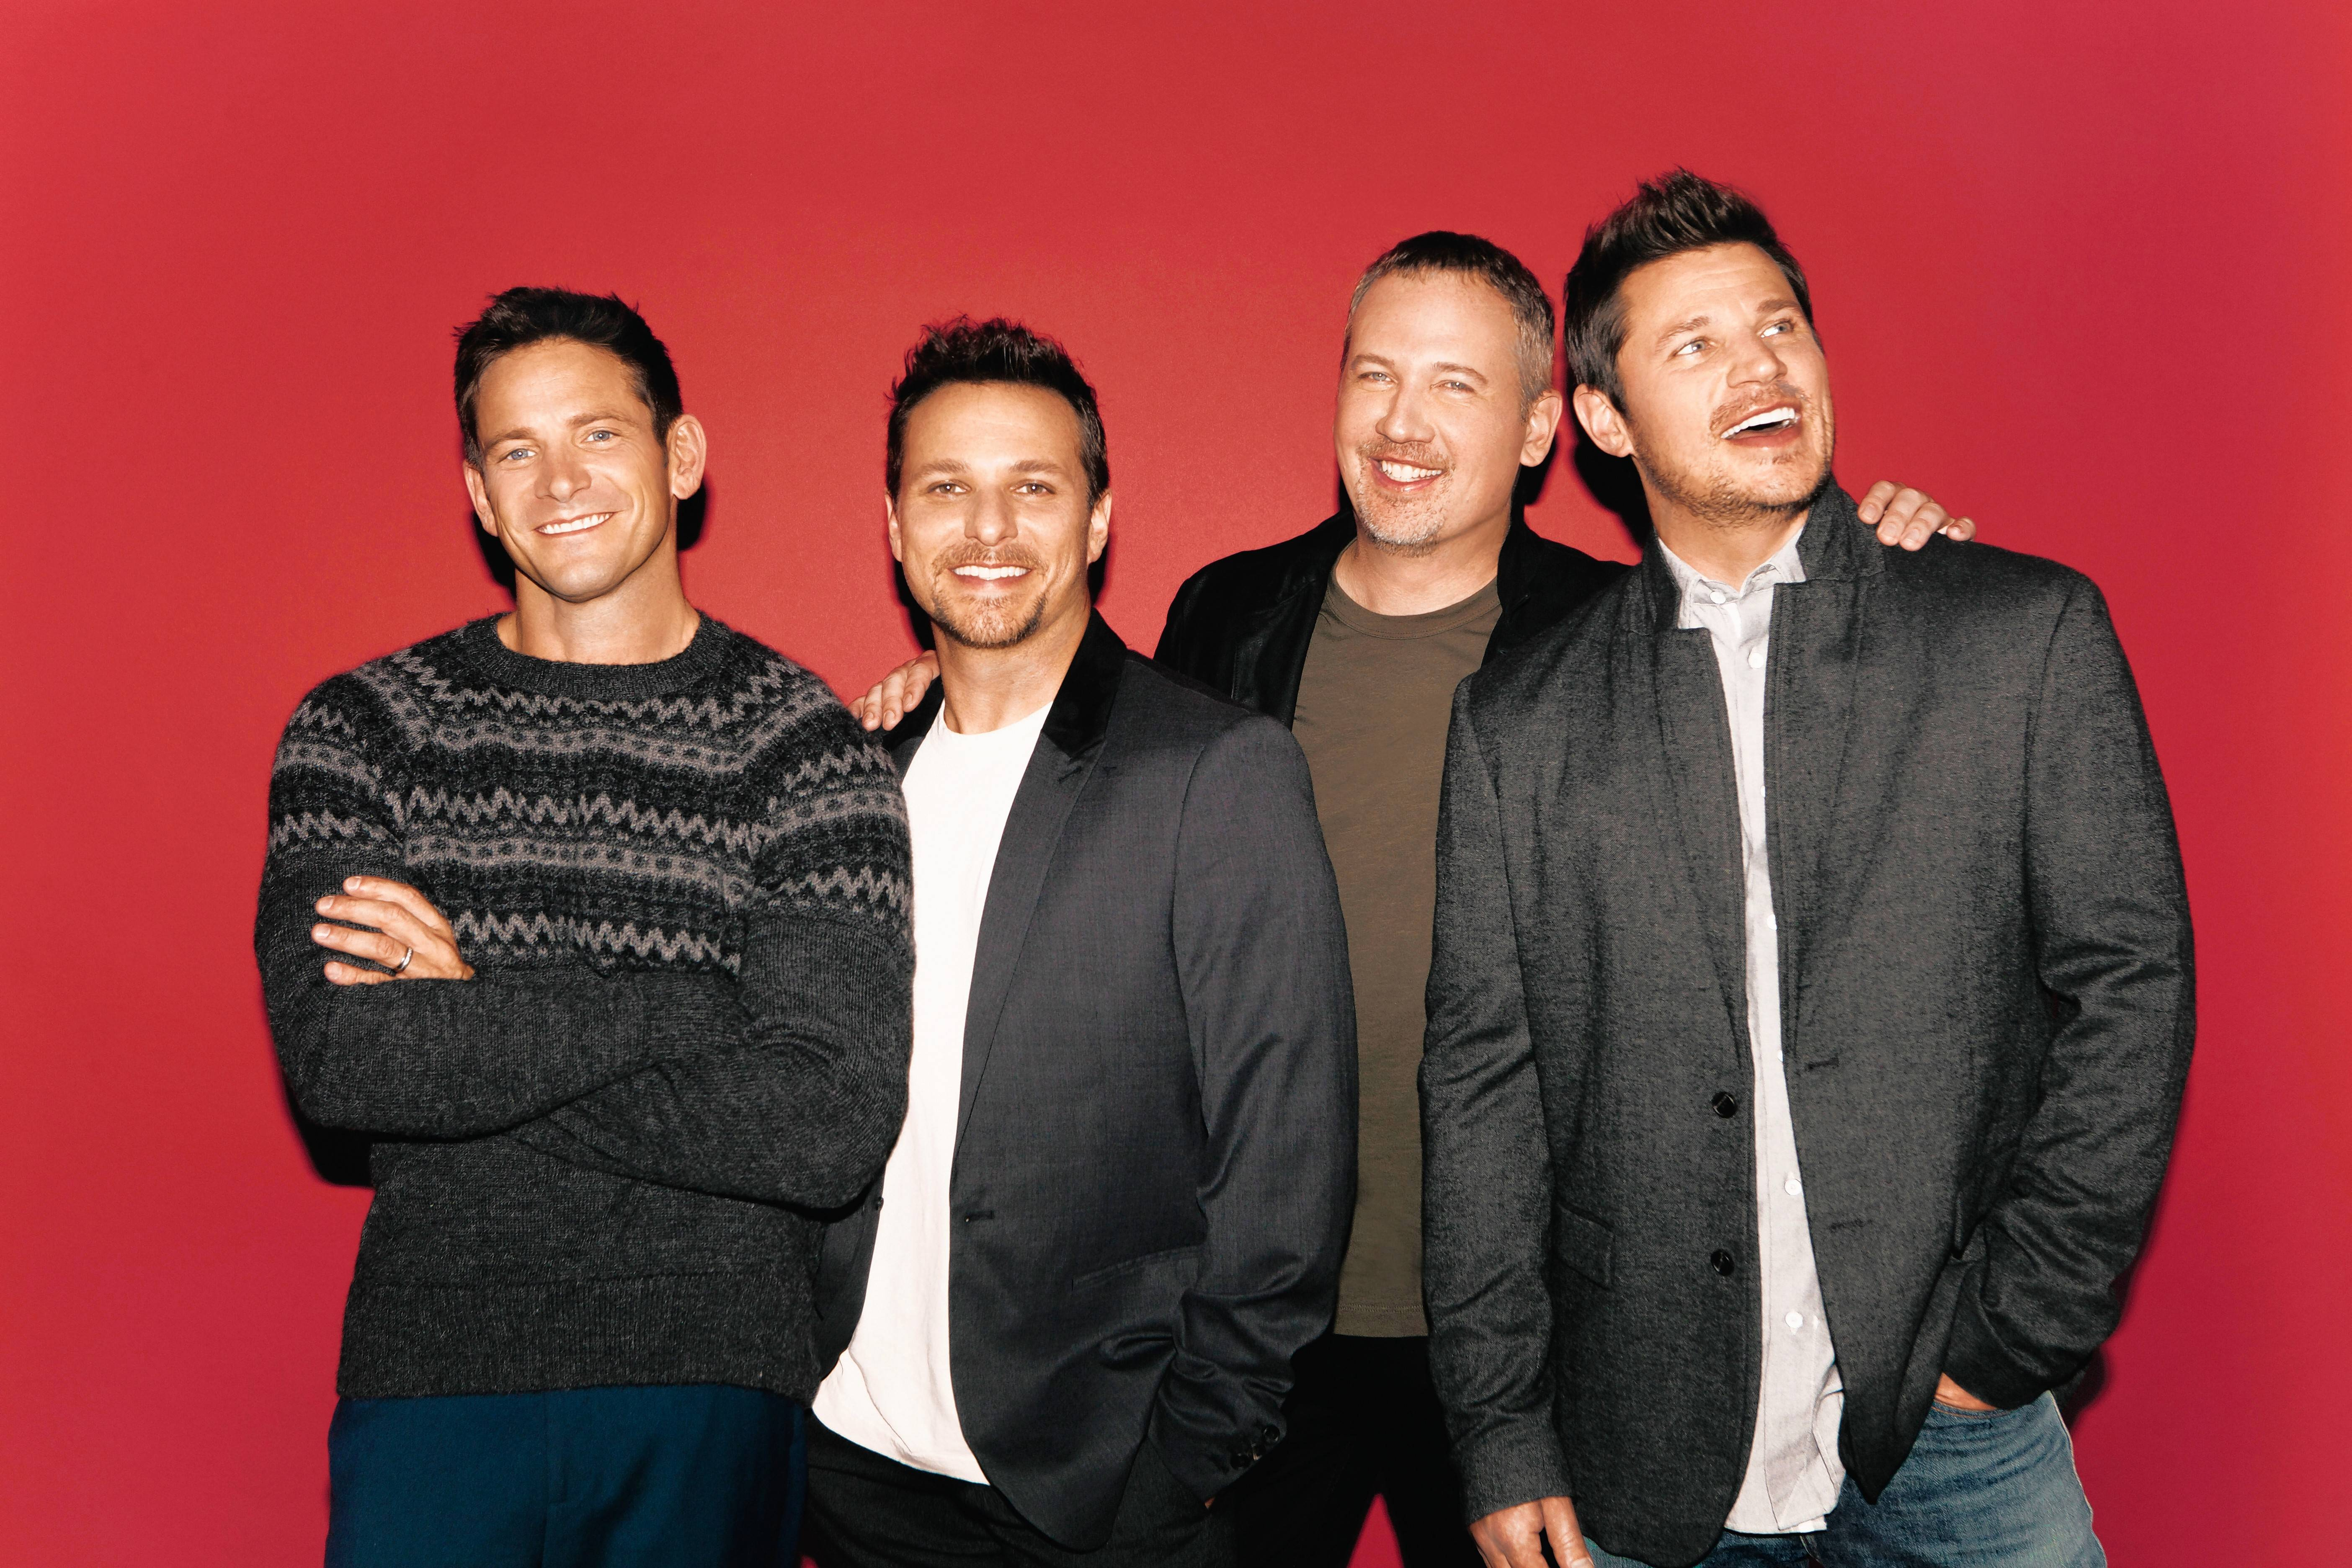 98 Degrees brings some Christmas spirit to the Genesee Theatre Saturday, Dec. 16.